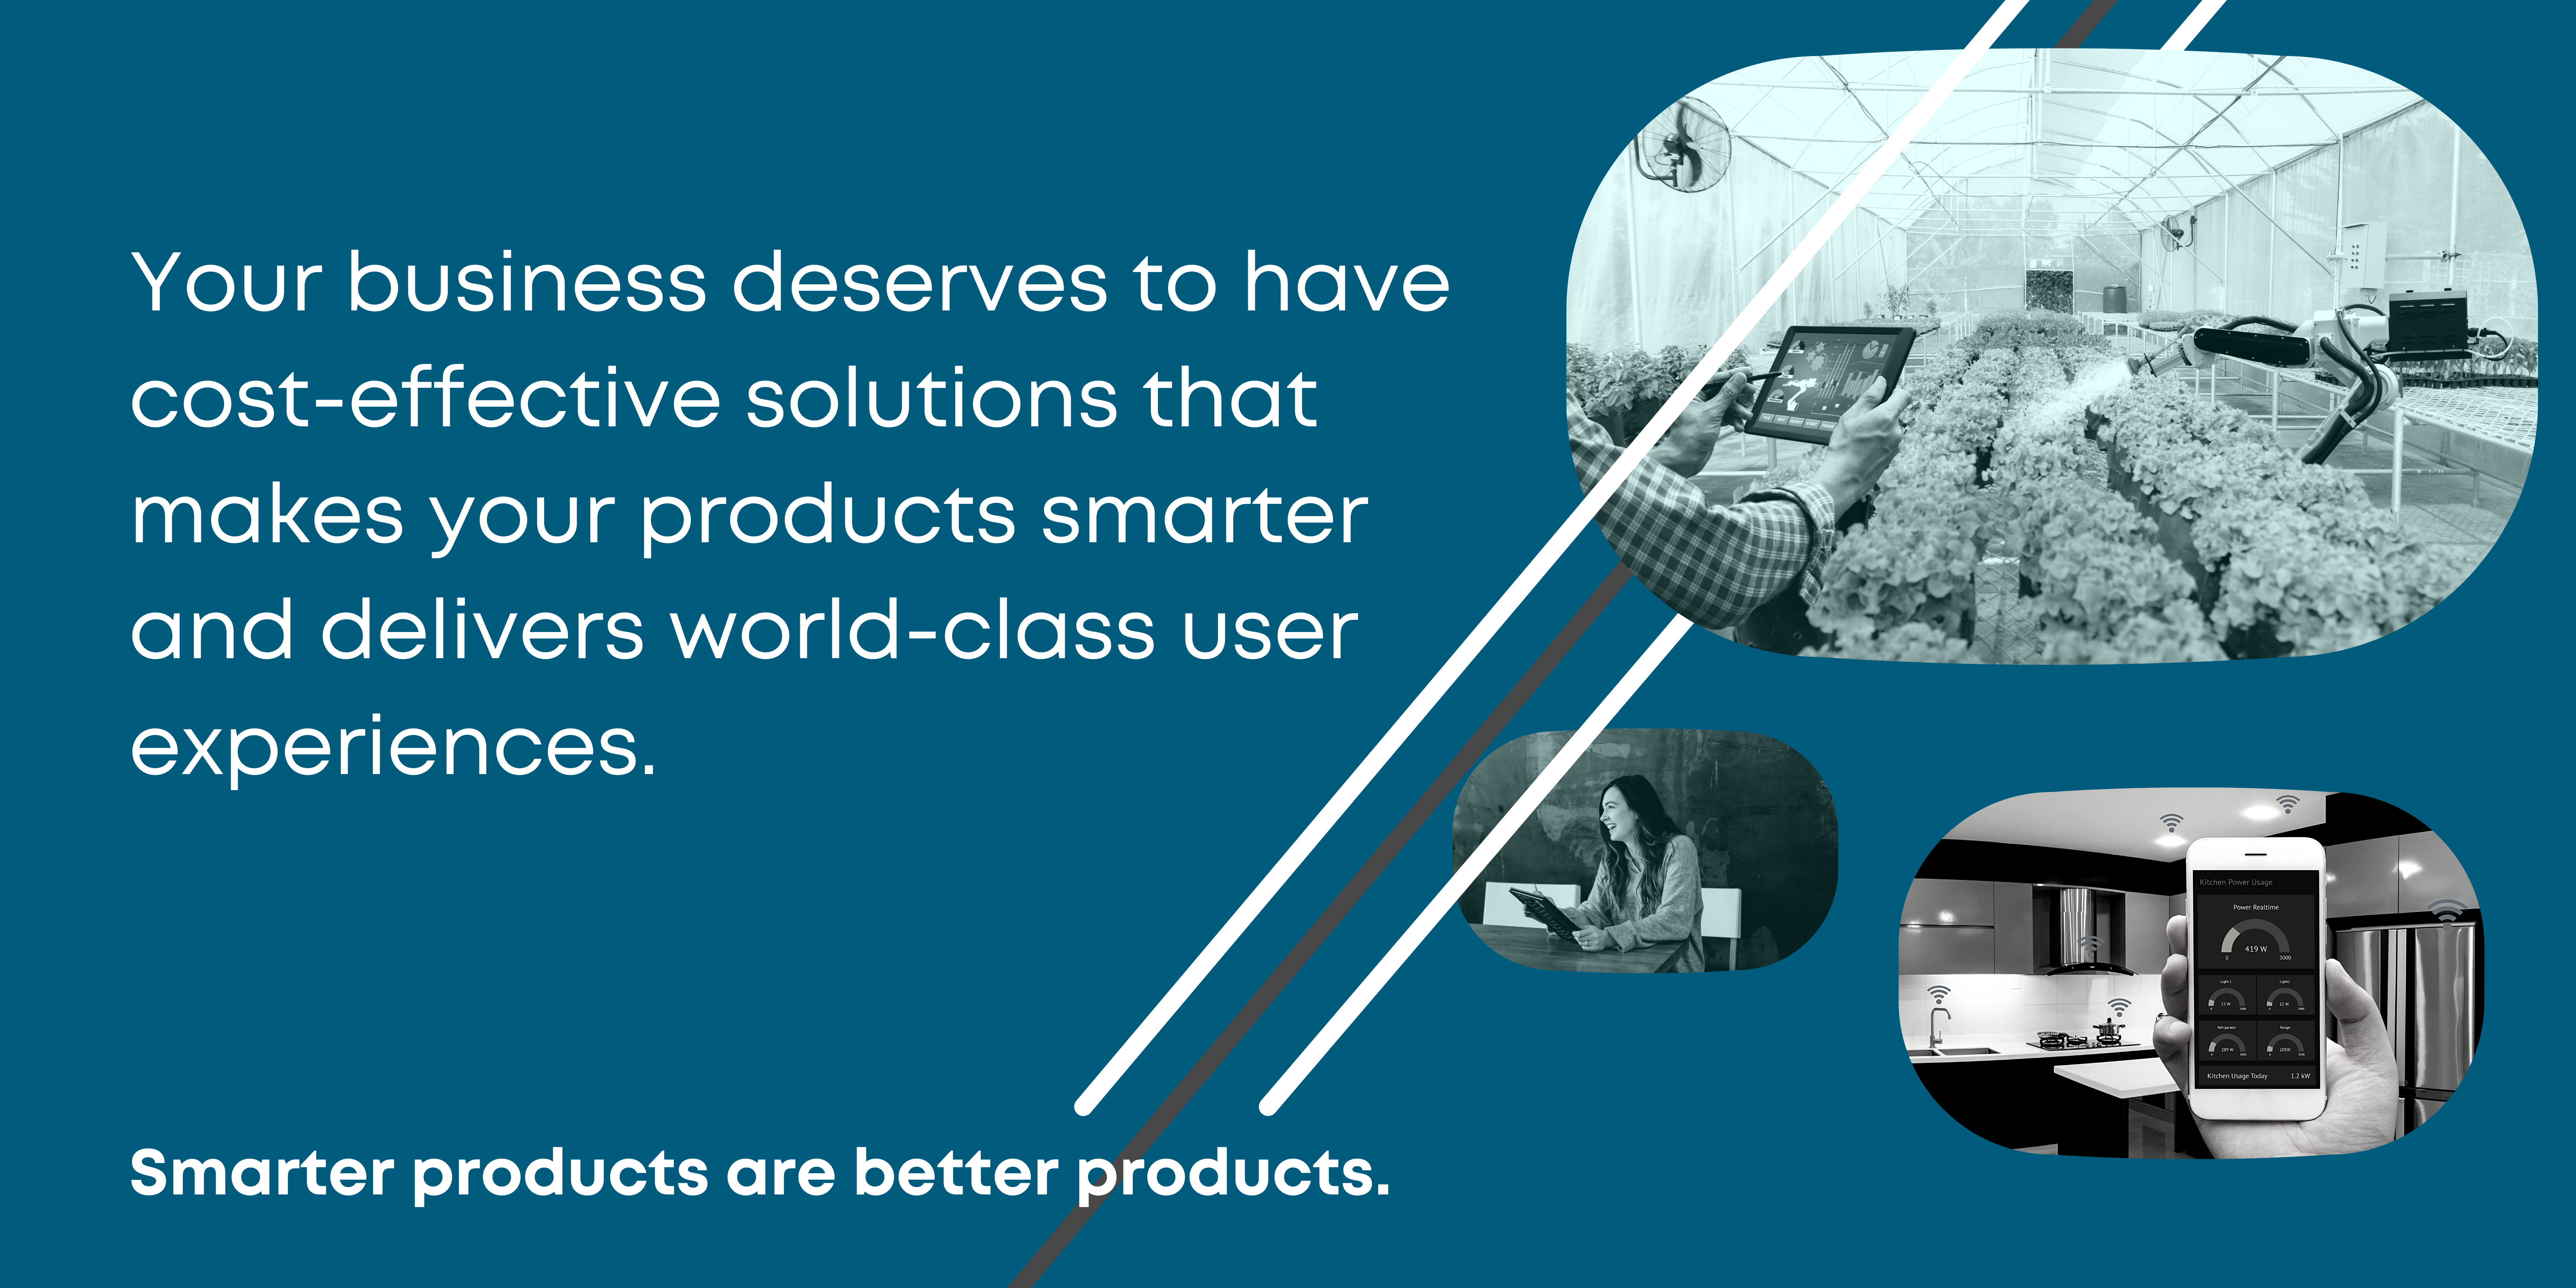 Your business deserves to have cost-effective solutions that makes your products smarter and delivers world-class user experiences